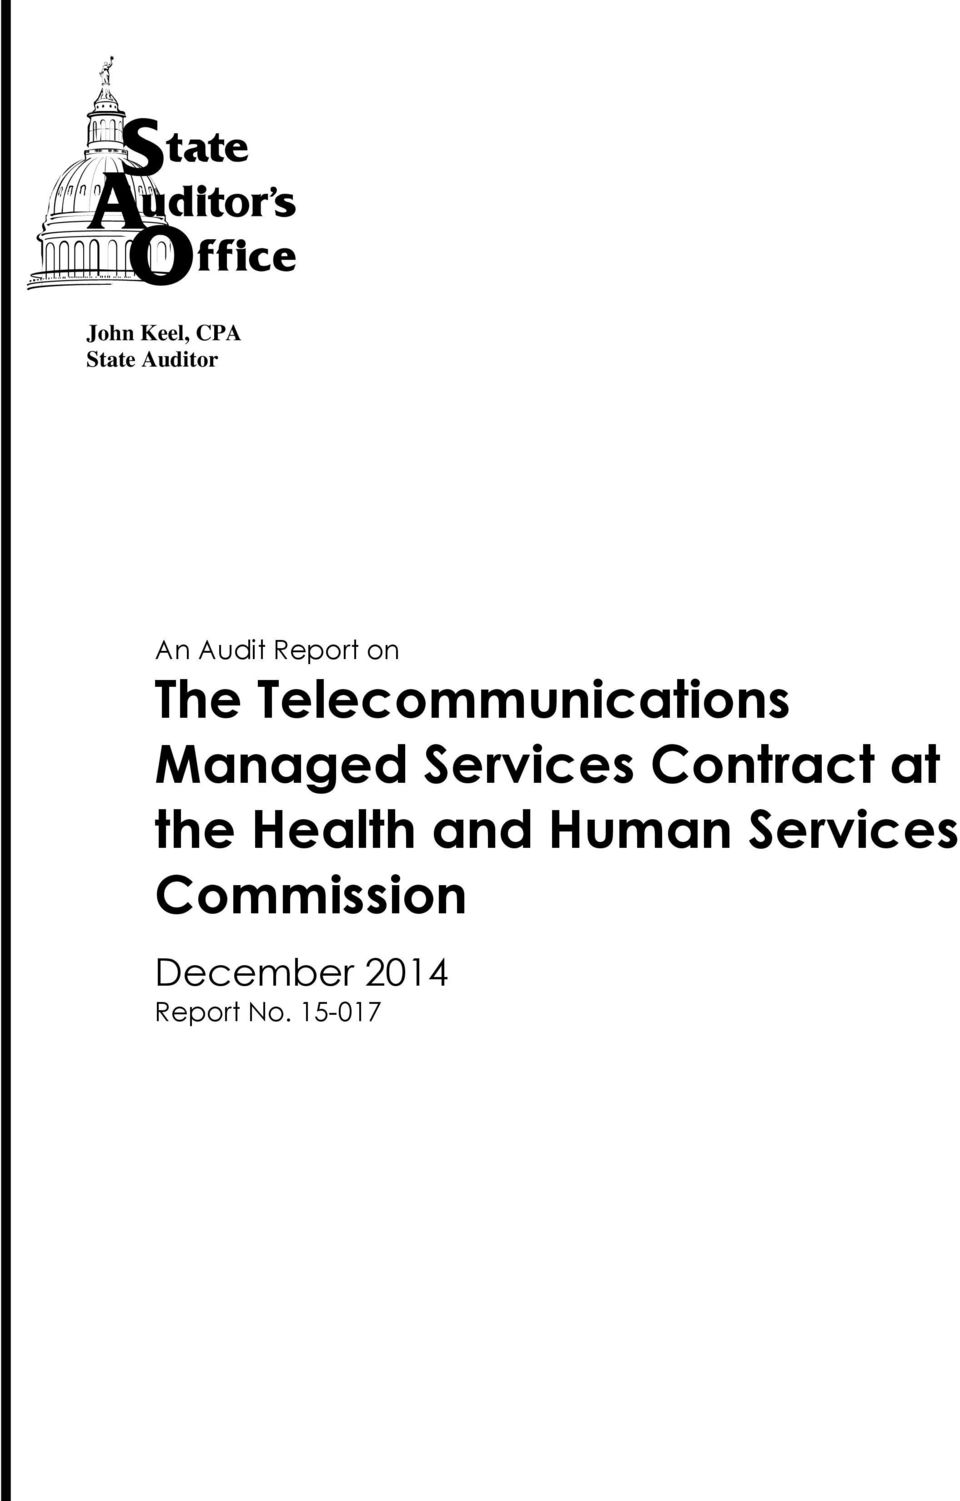 Managed Services Contract at the Health